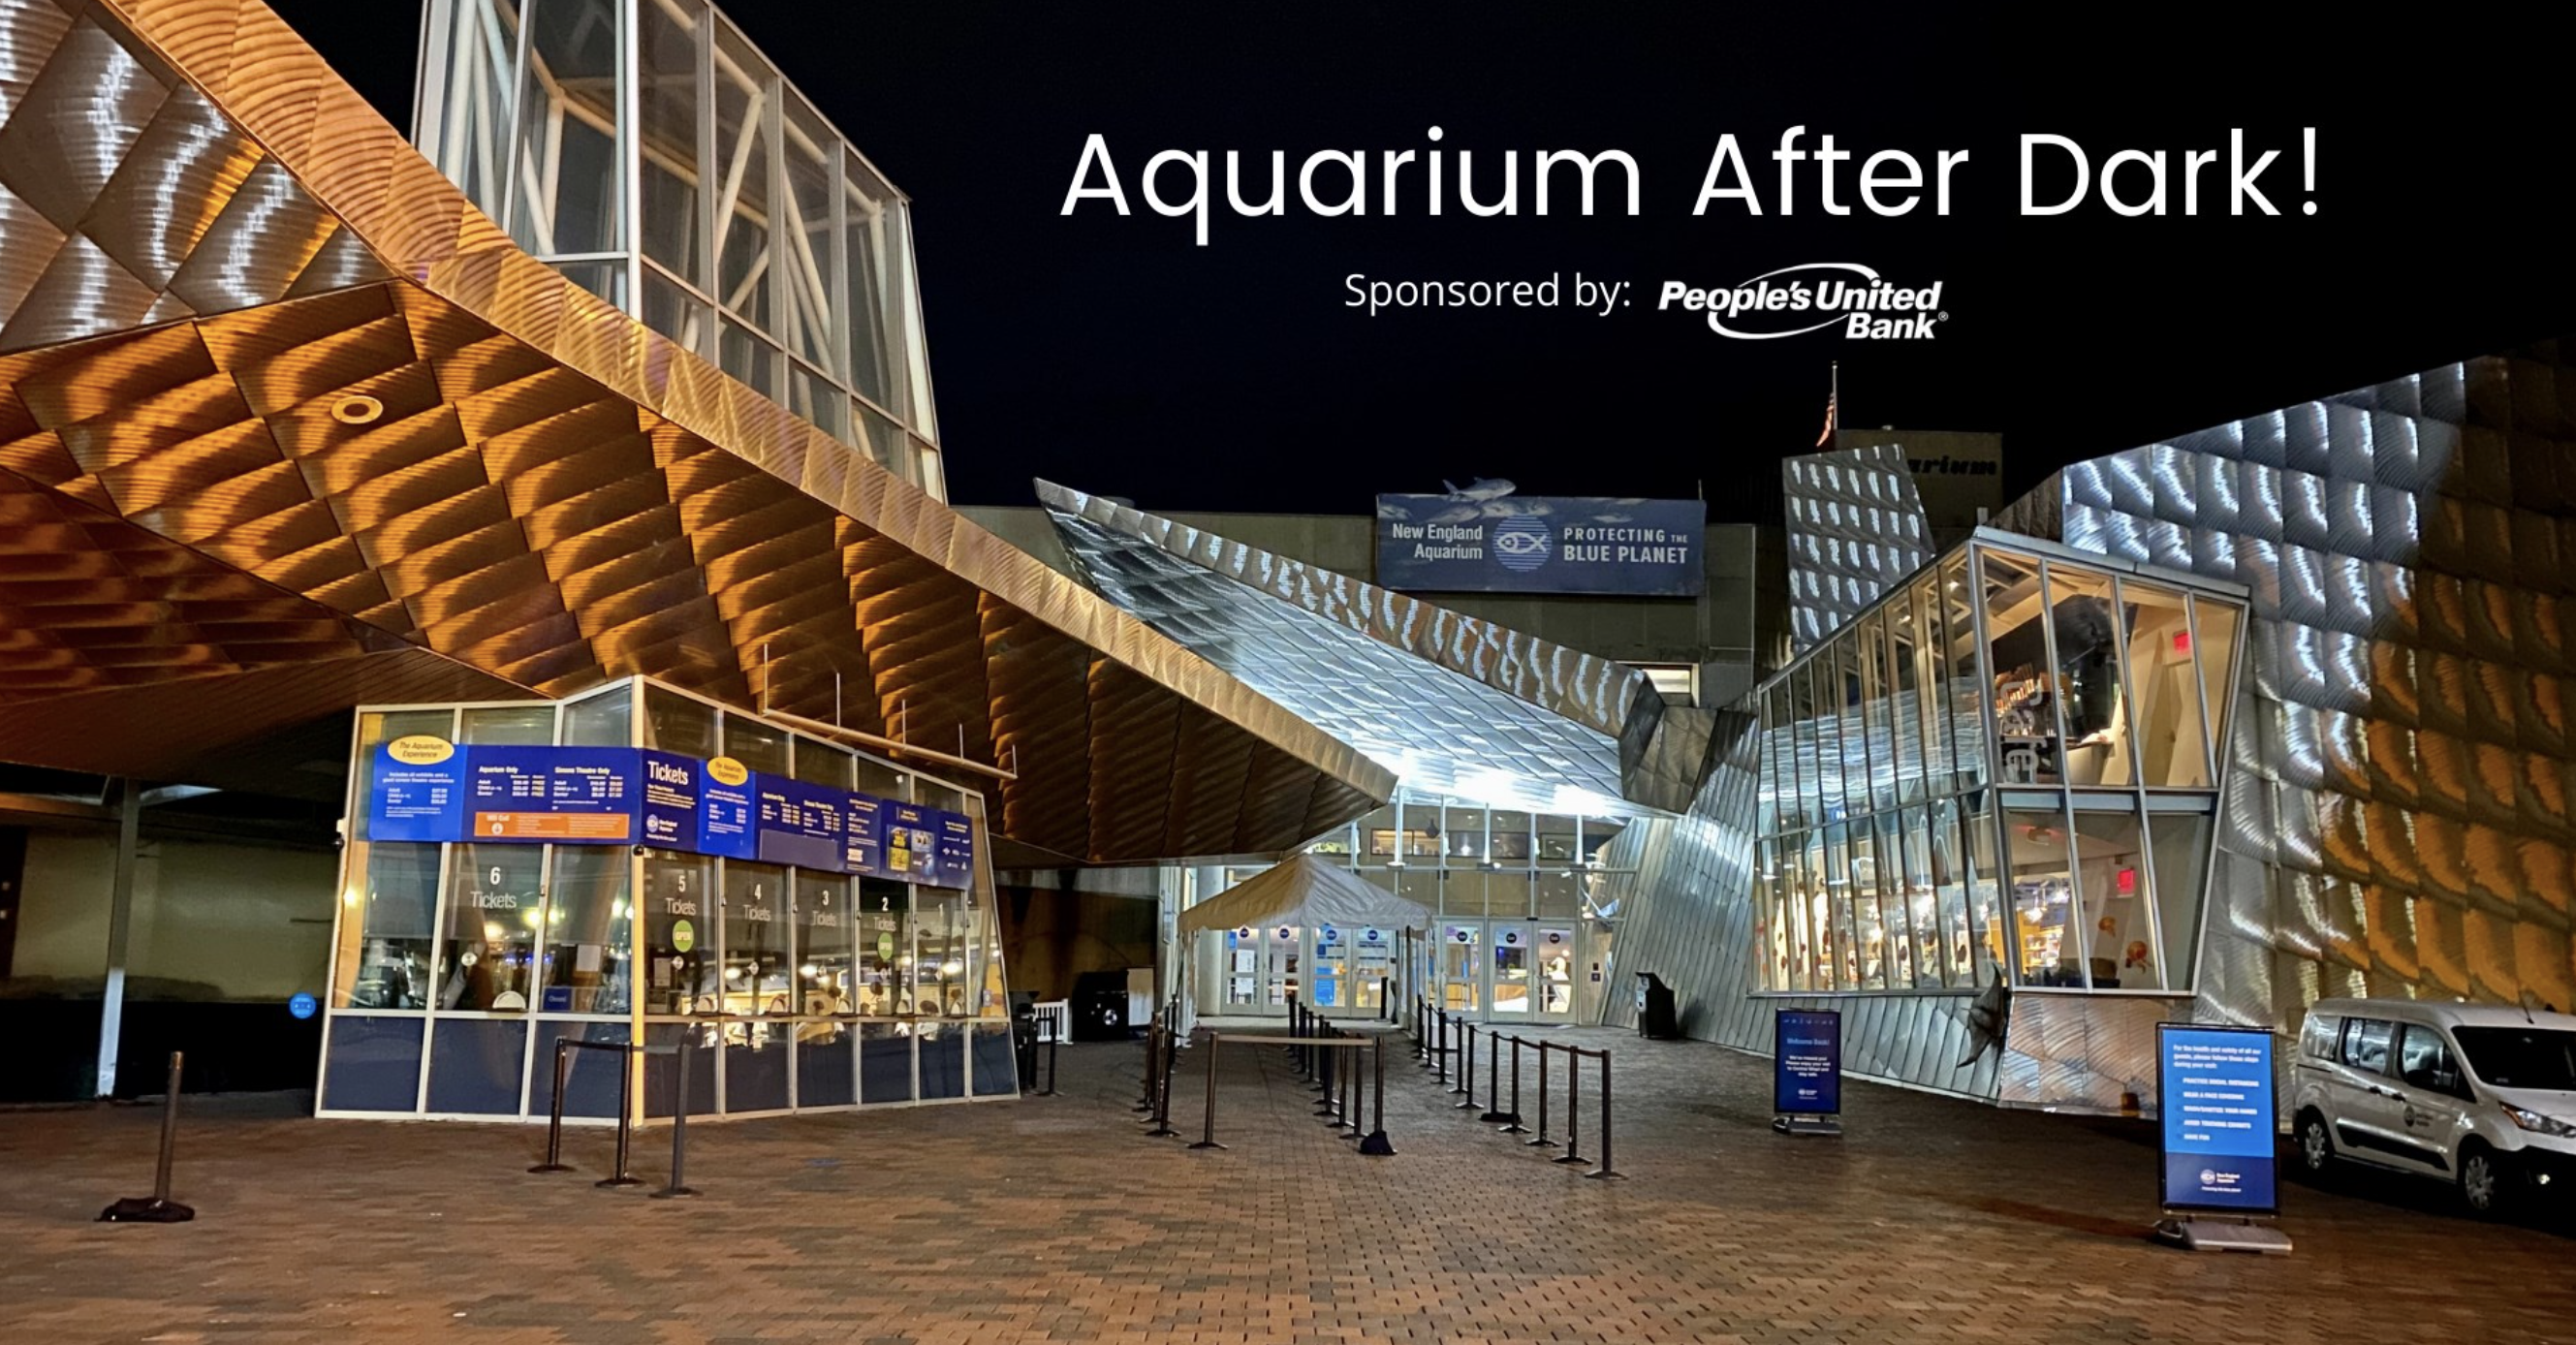 Aquarium After Dark